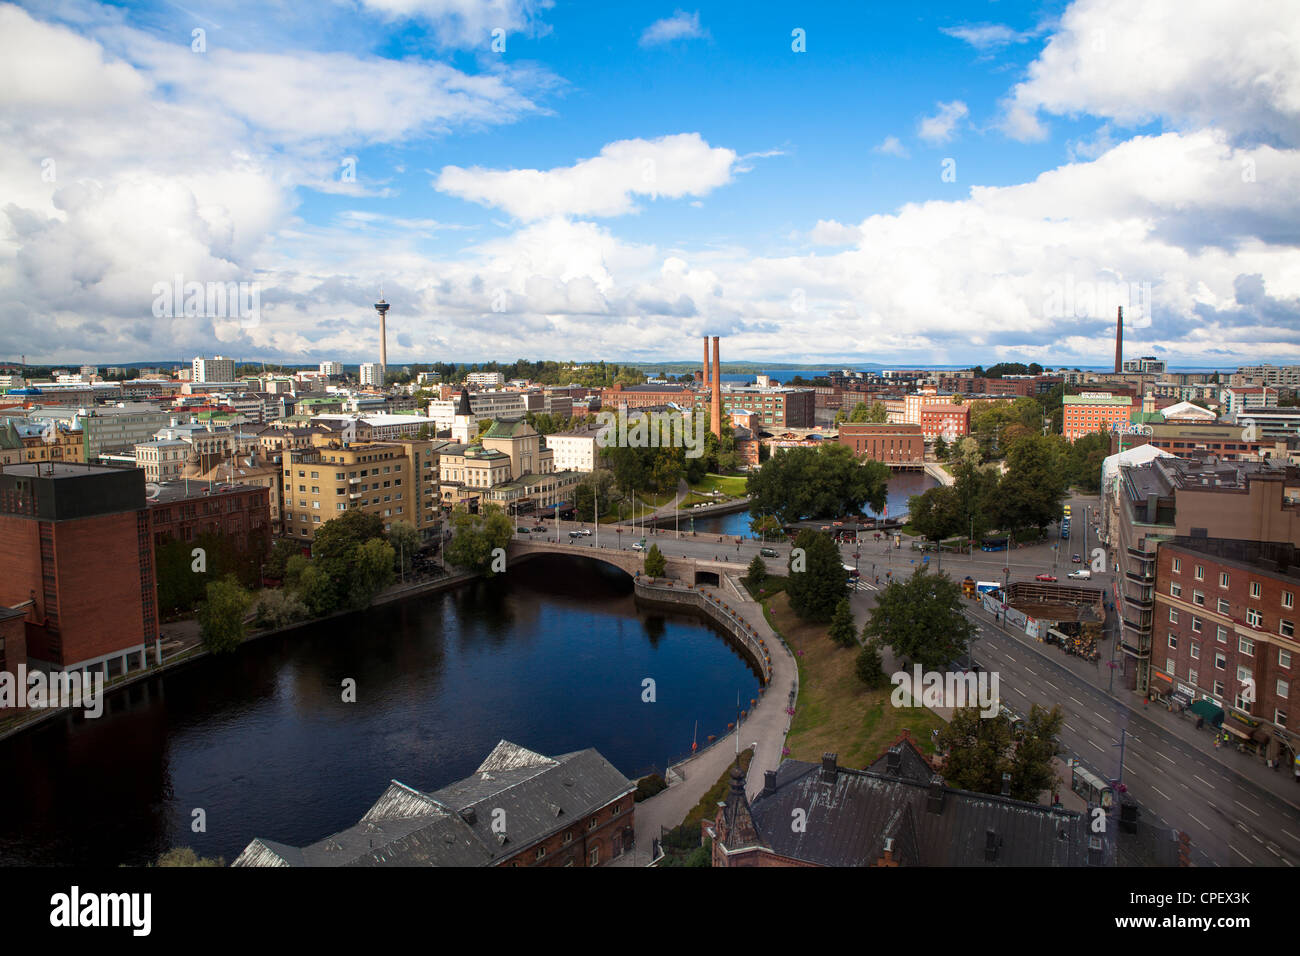 Architecture of  Tampere Finland - Stock Image